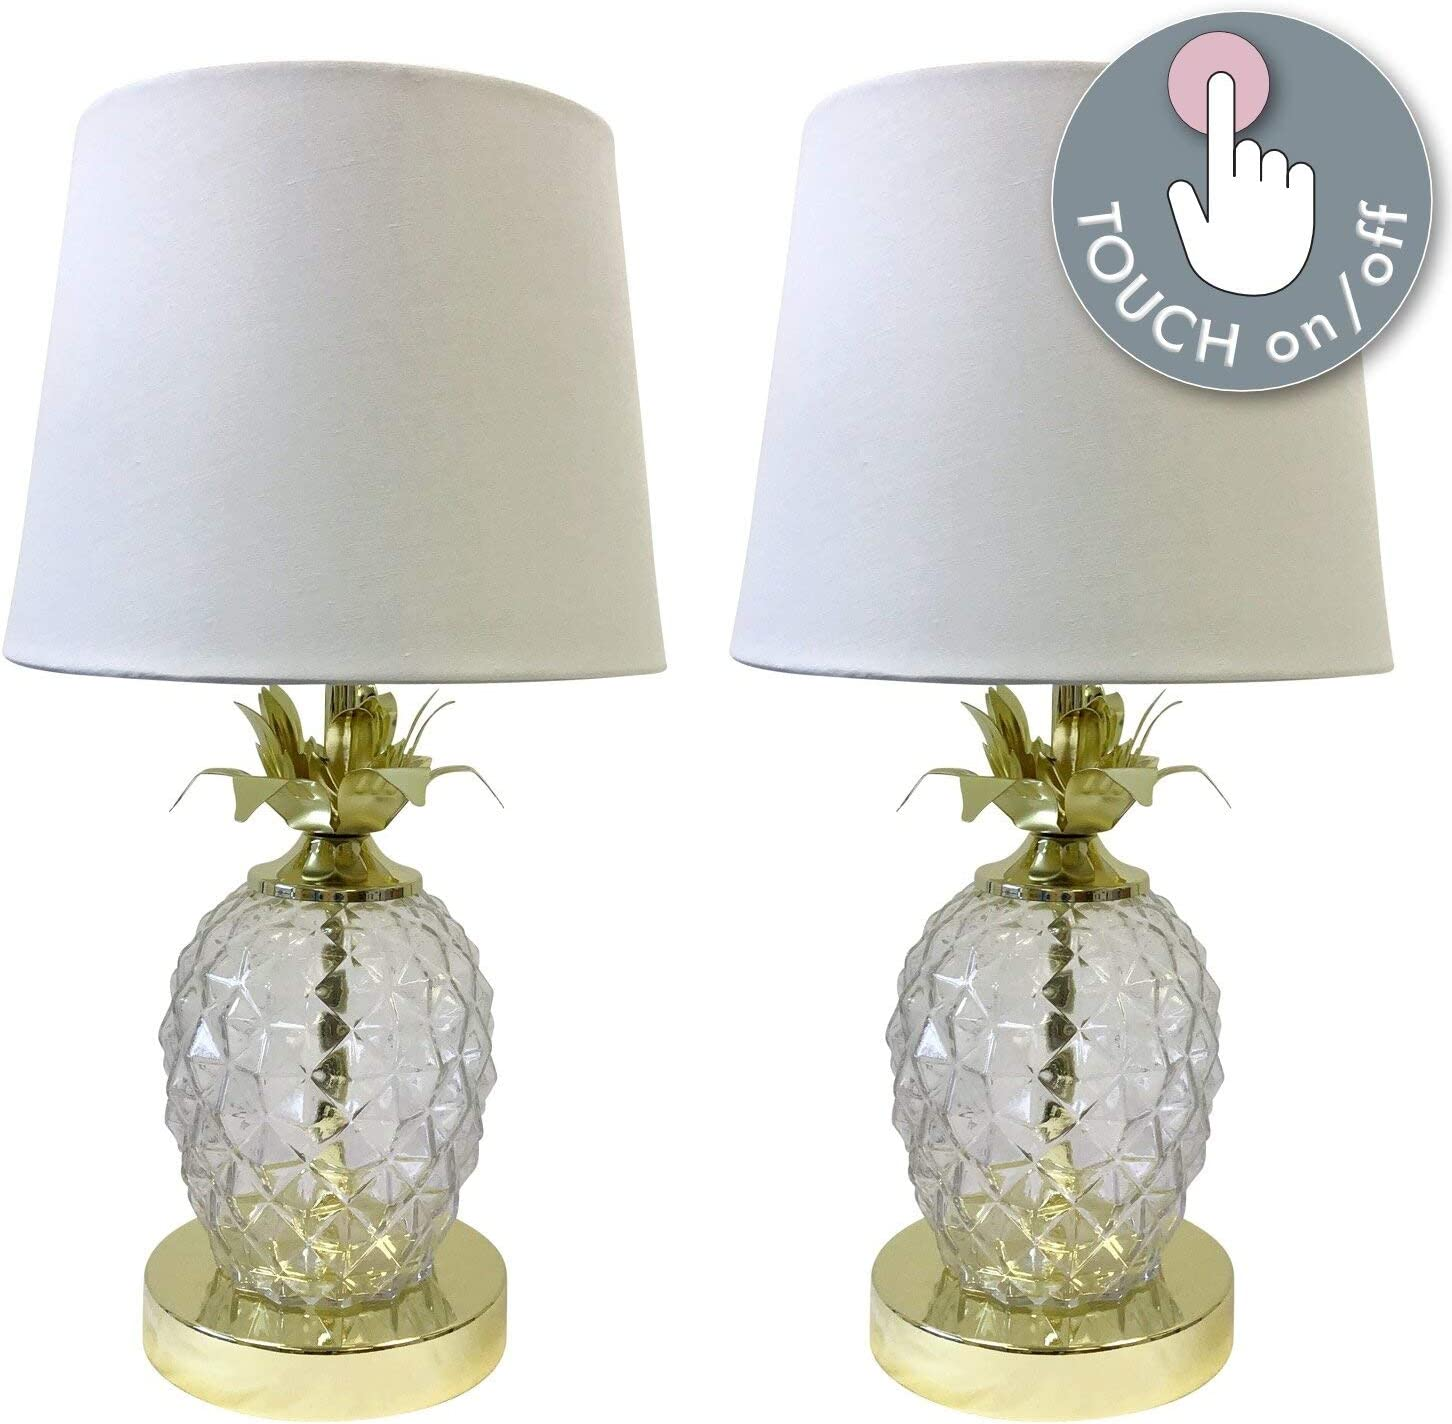 Pair Of Modern Pineapple Design Touch Operated Table Lamps Or Bedside Lights Gold With White Shade Touch Lamp Led Compatible 42cm Tall Amazon Co Uk Lighting